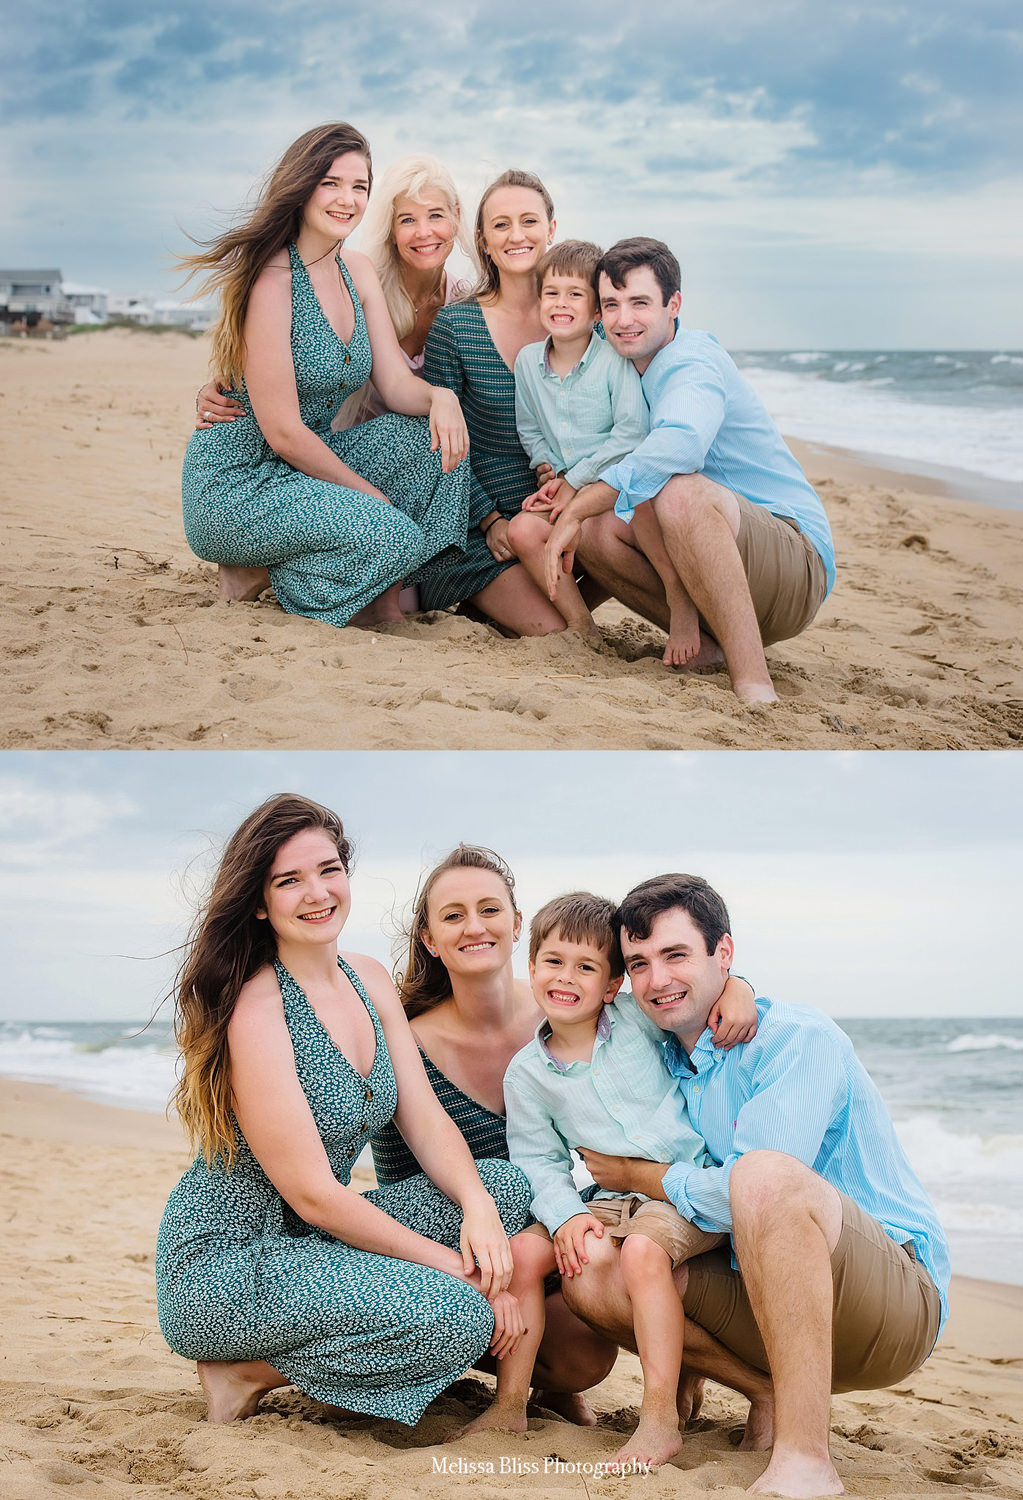 virginia-beach-family-photo-shoot-sandbridge-beach-melissa-bliss-photography.jpg